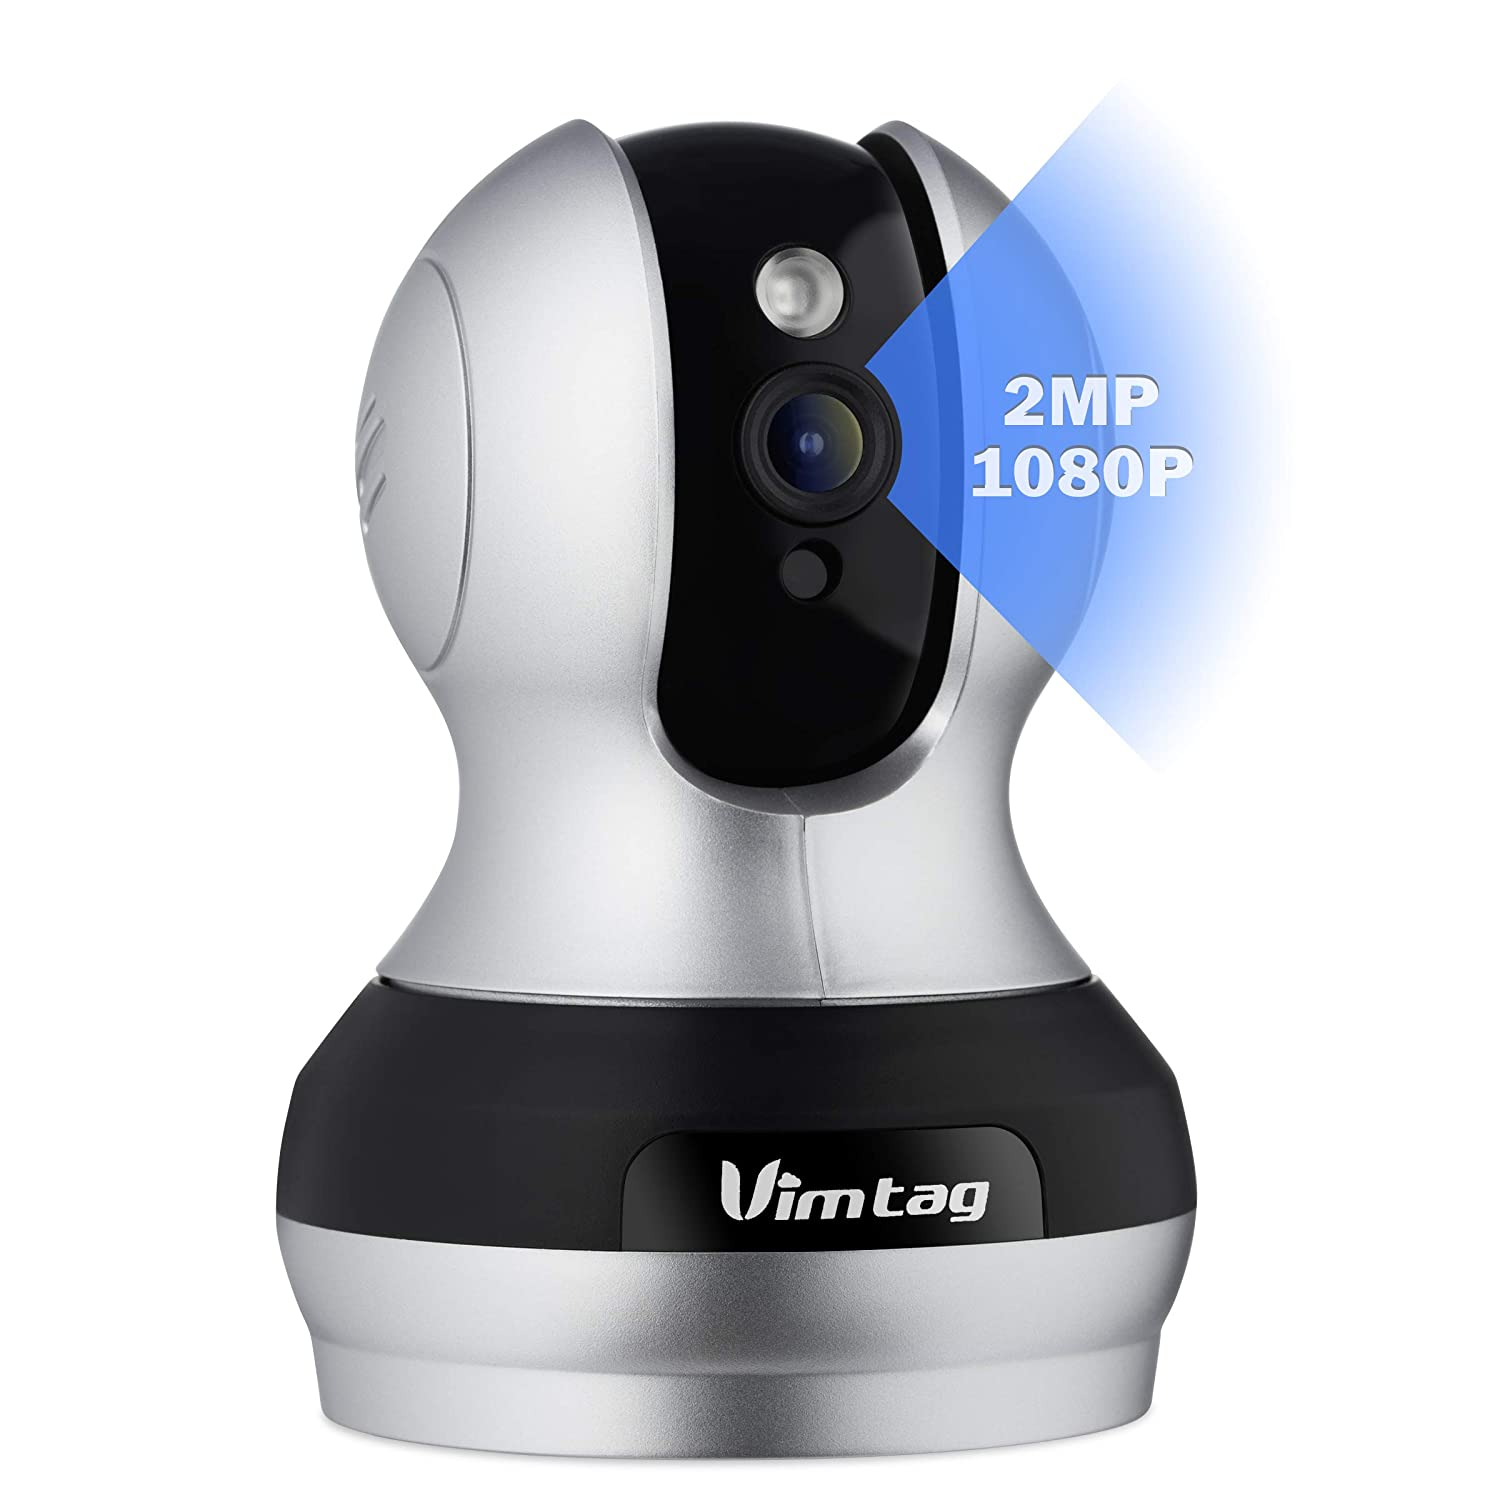 Vimtag VT-361 Super HD 2MP WiFi Video Monitoring Surveillance Security Camera, Plug Play, Pan Tilt with Two-Way Audio Night Vision 1080P Supports Alexa